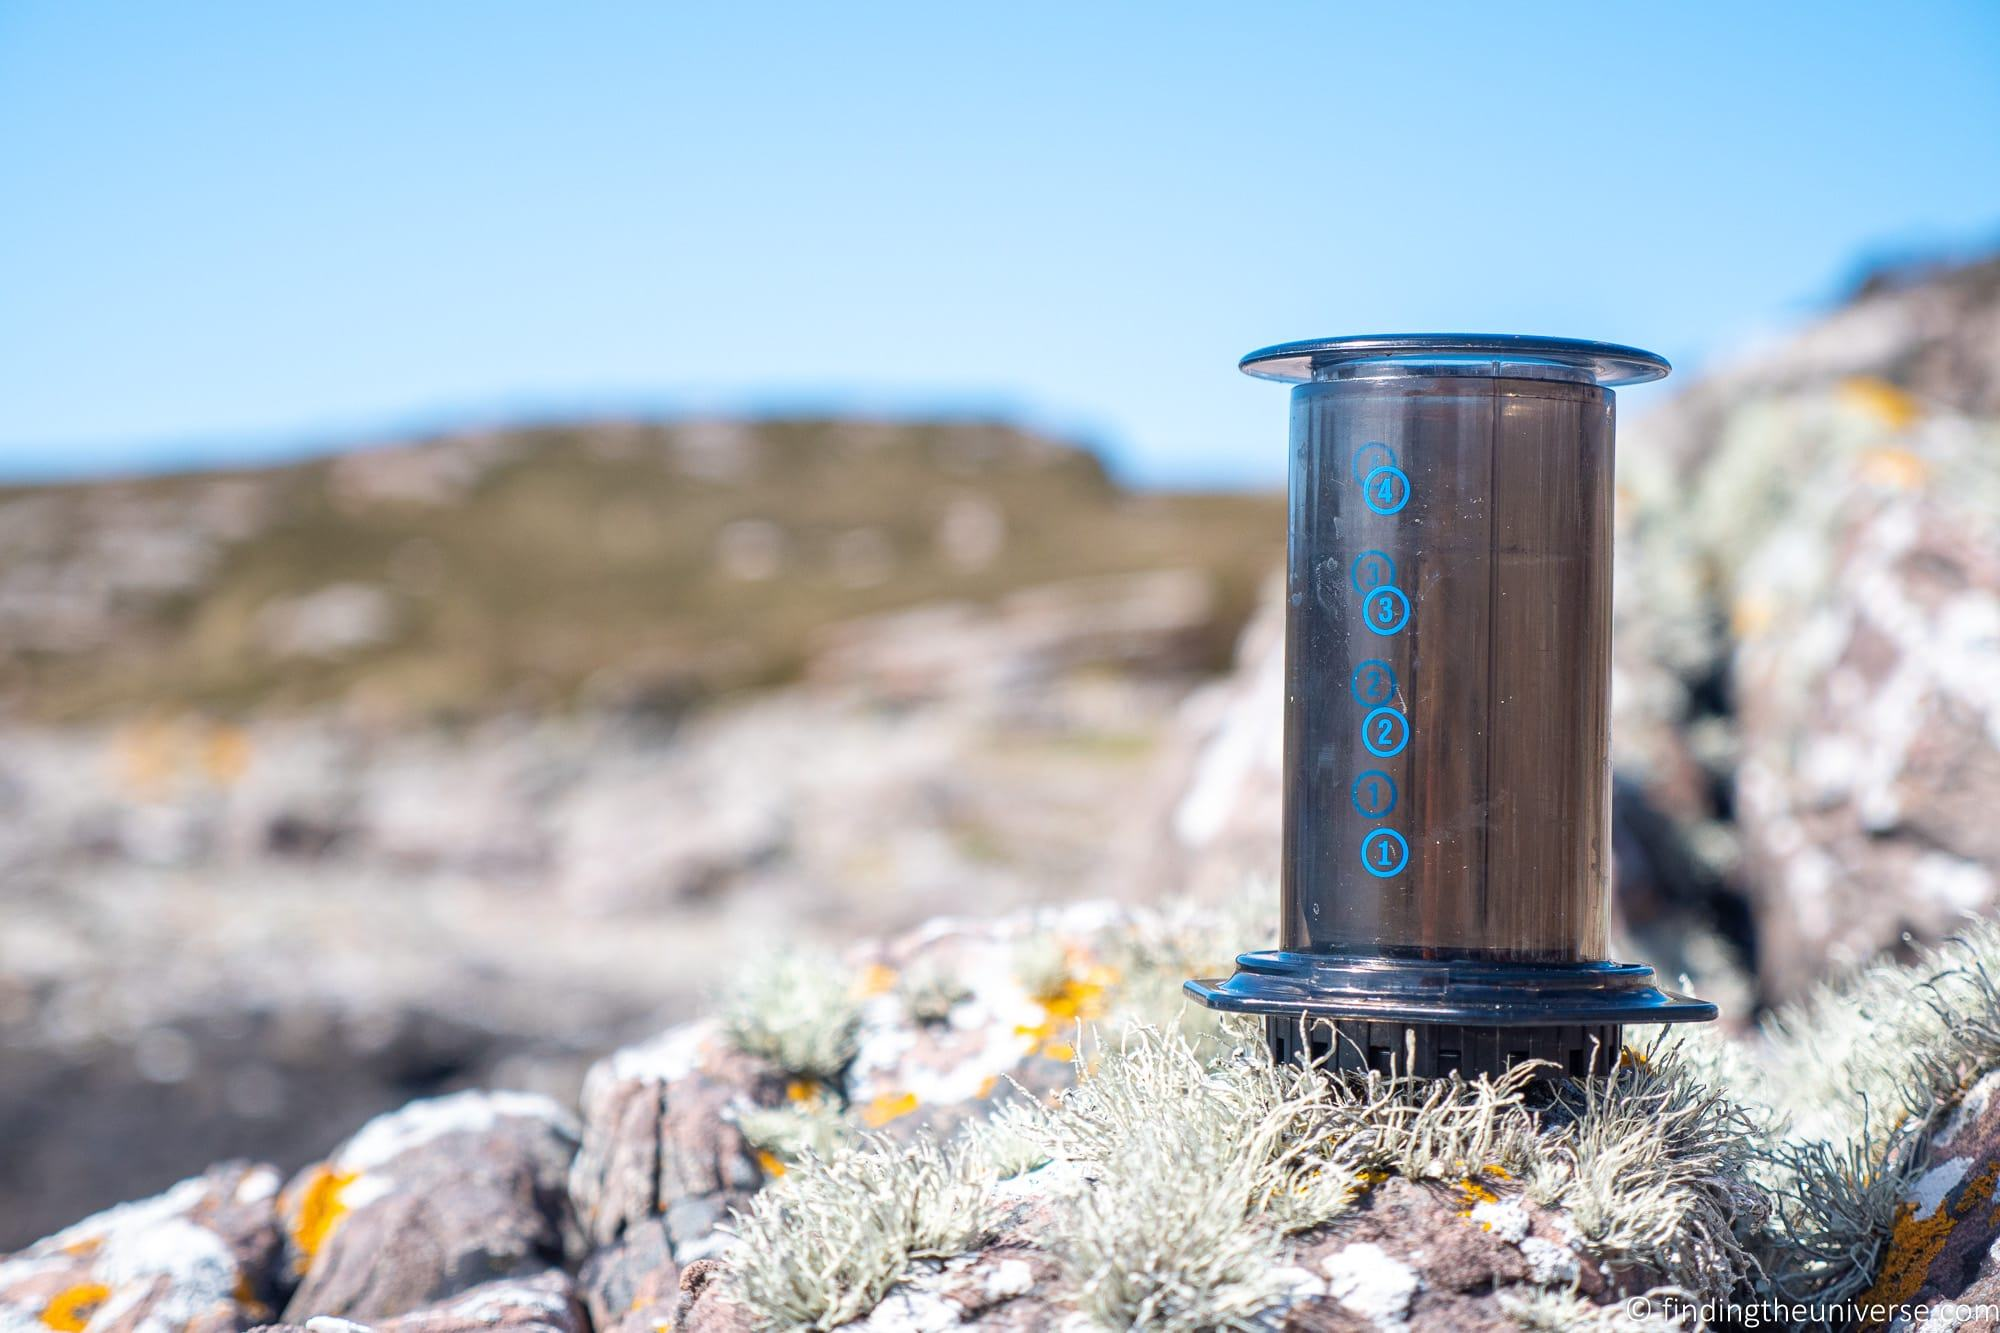 AeroPress Travel Coffee Maker